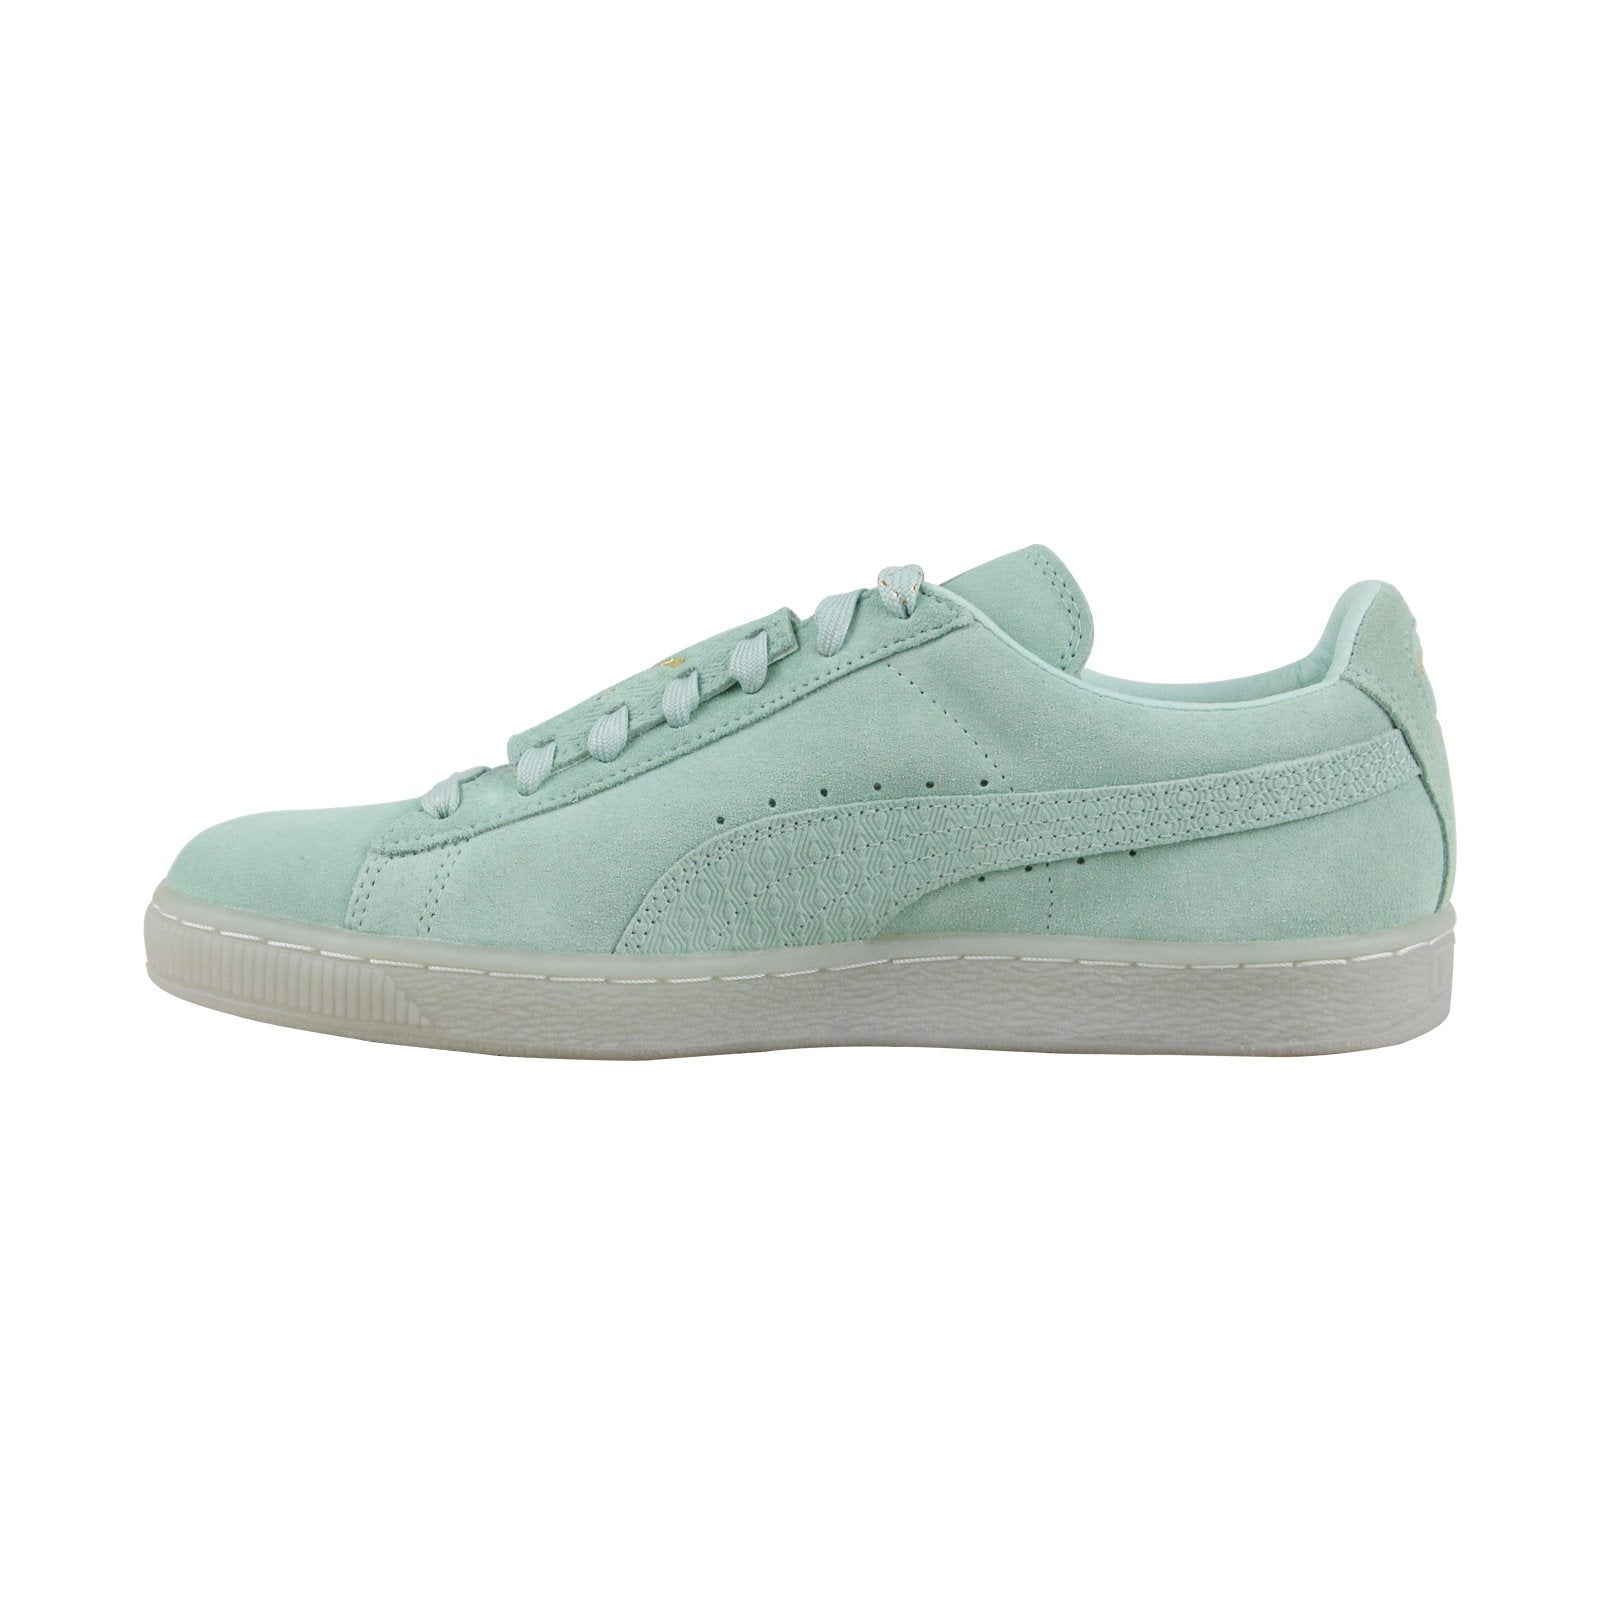 Puma Suede Epic Remix 36549401 Mens Green Casual Lace Up Low